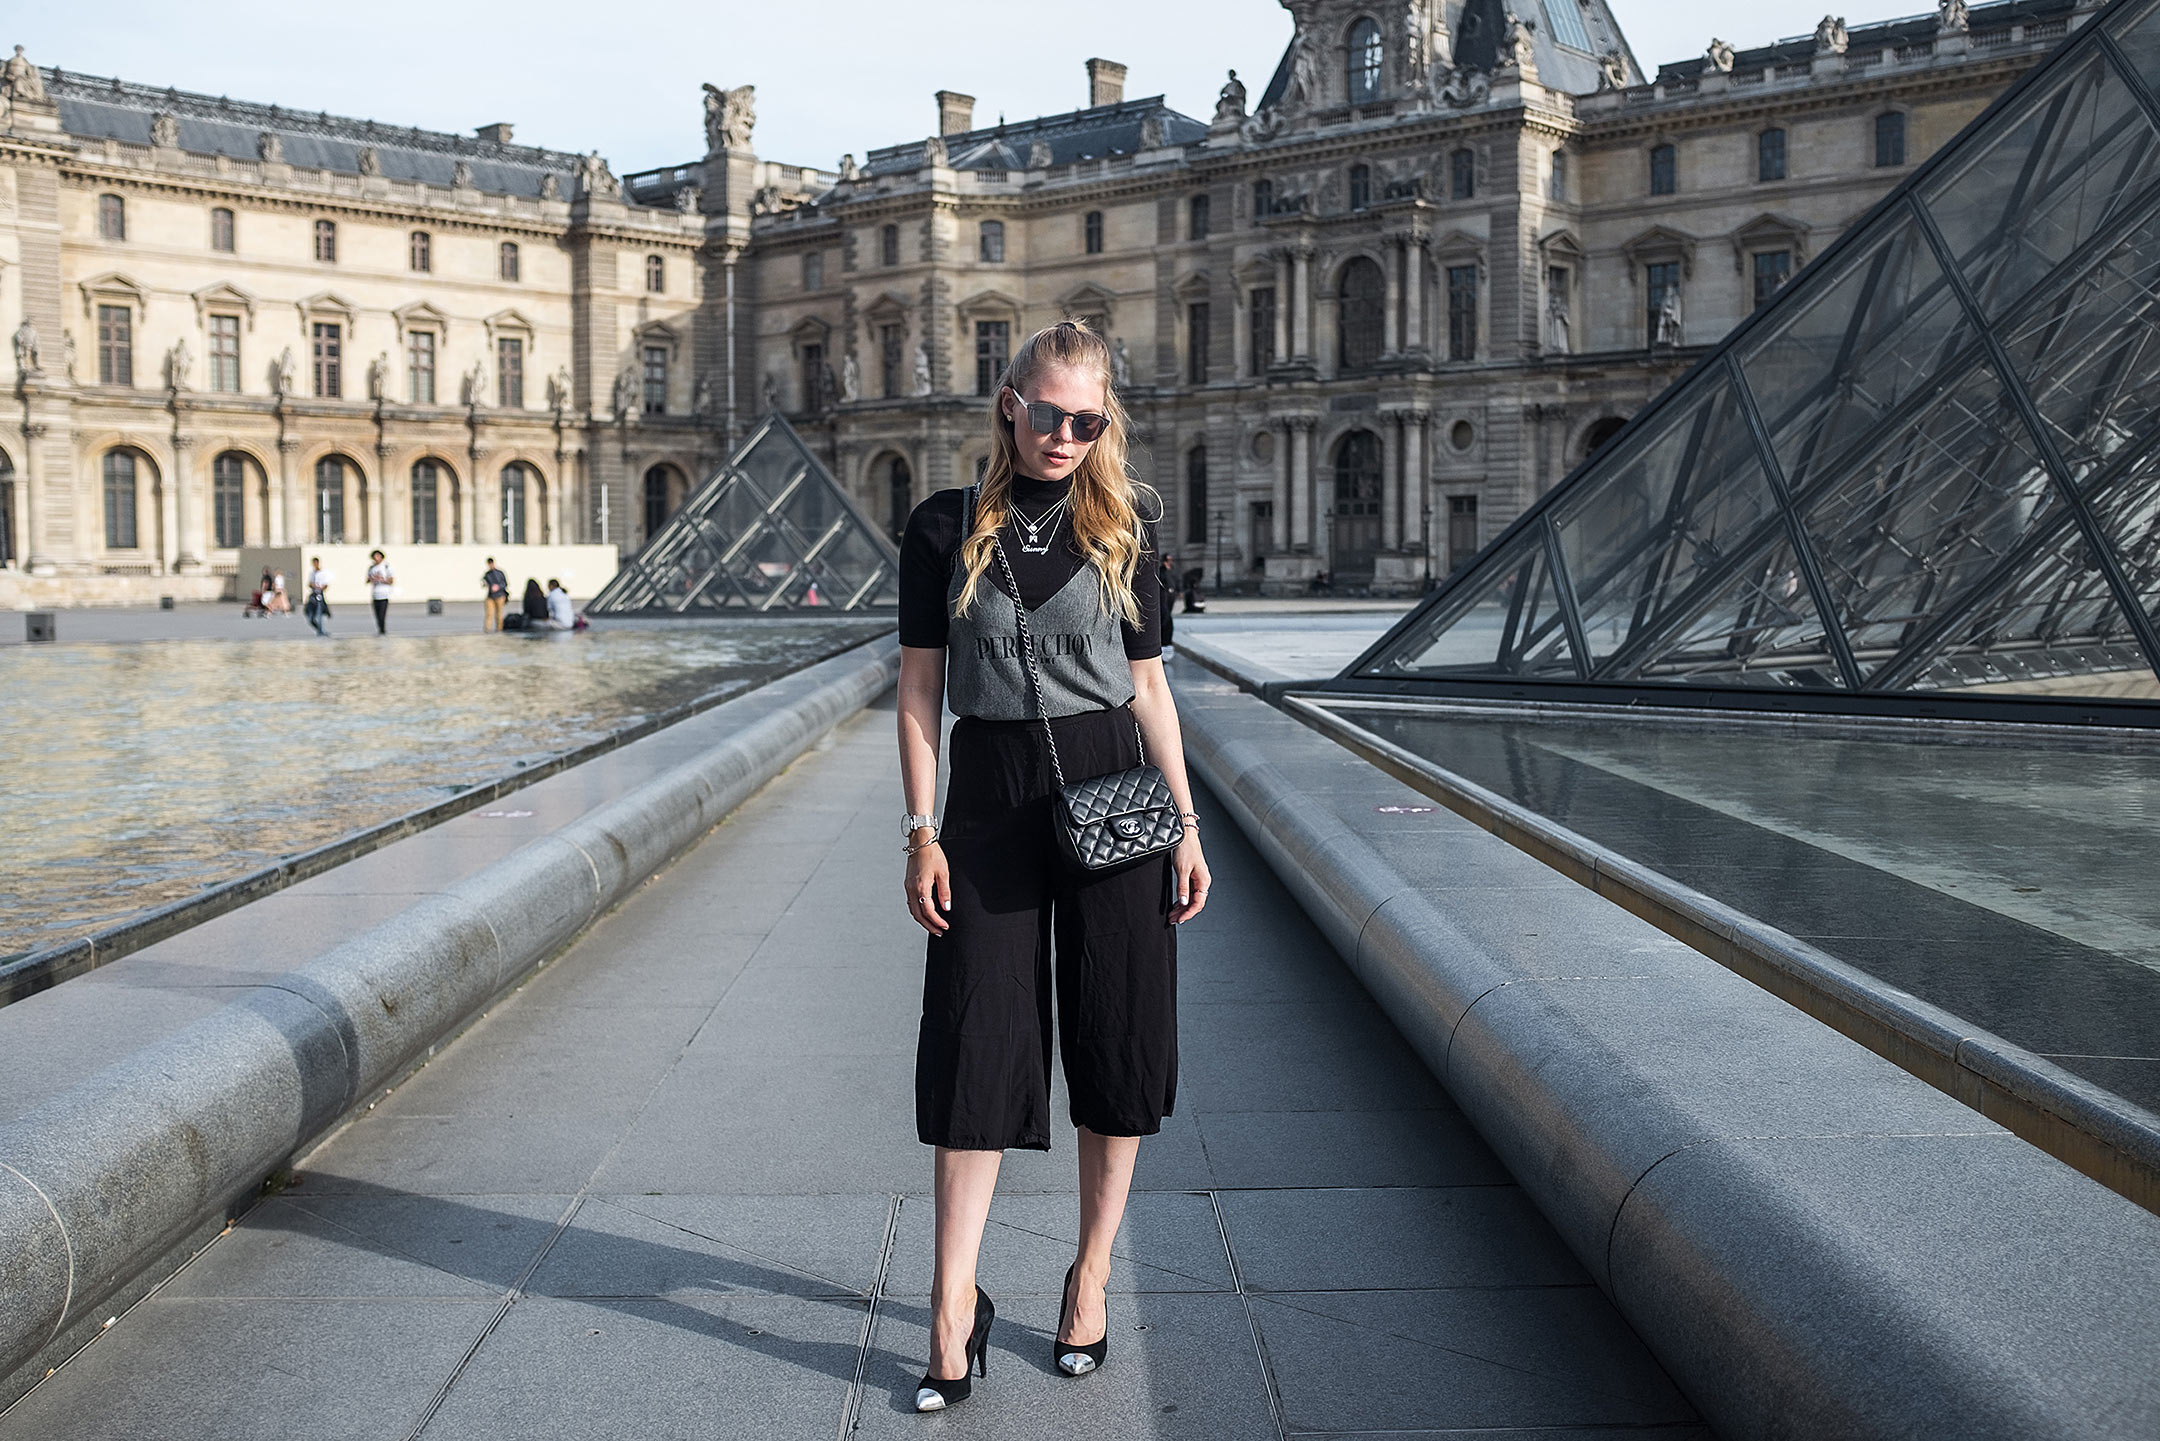 Paris Louvre Fashion Outfit Travelblog Sunnyinga